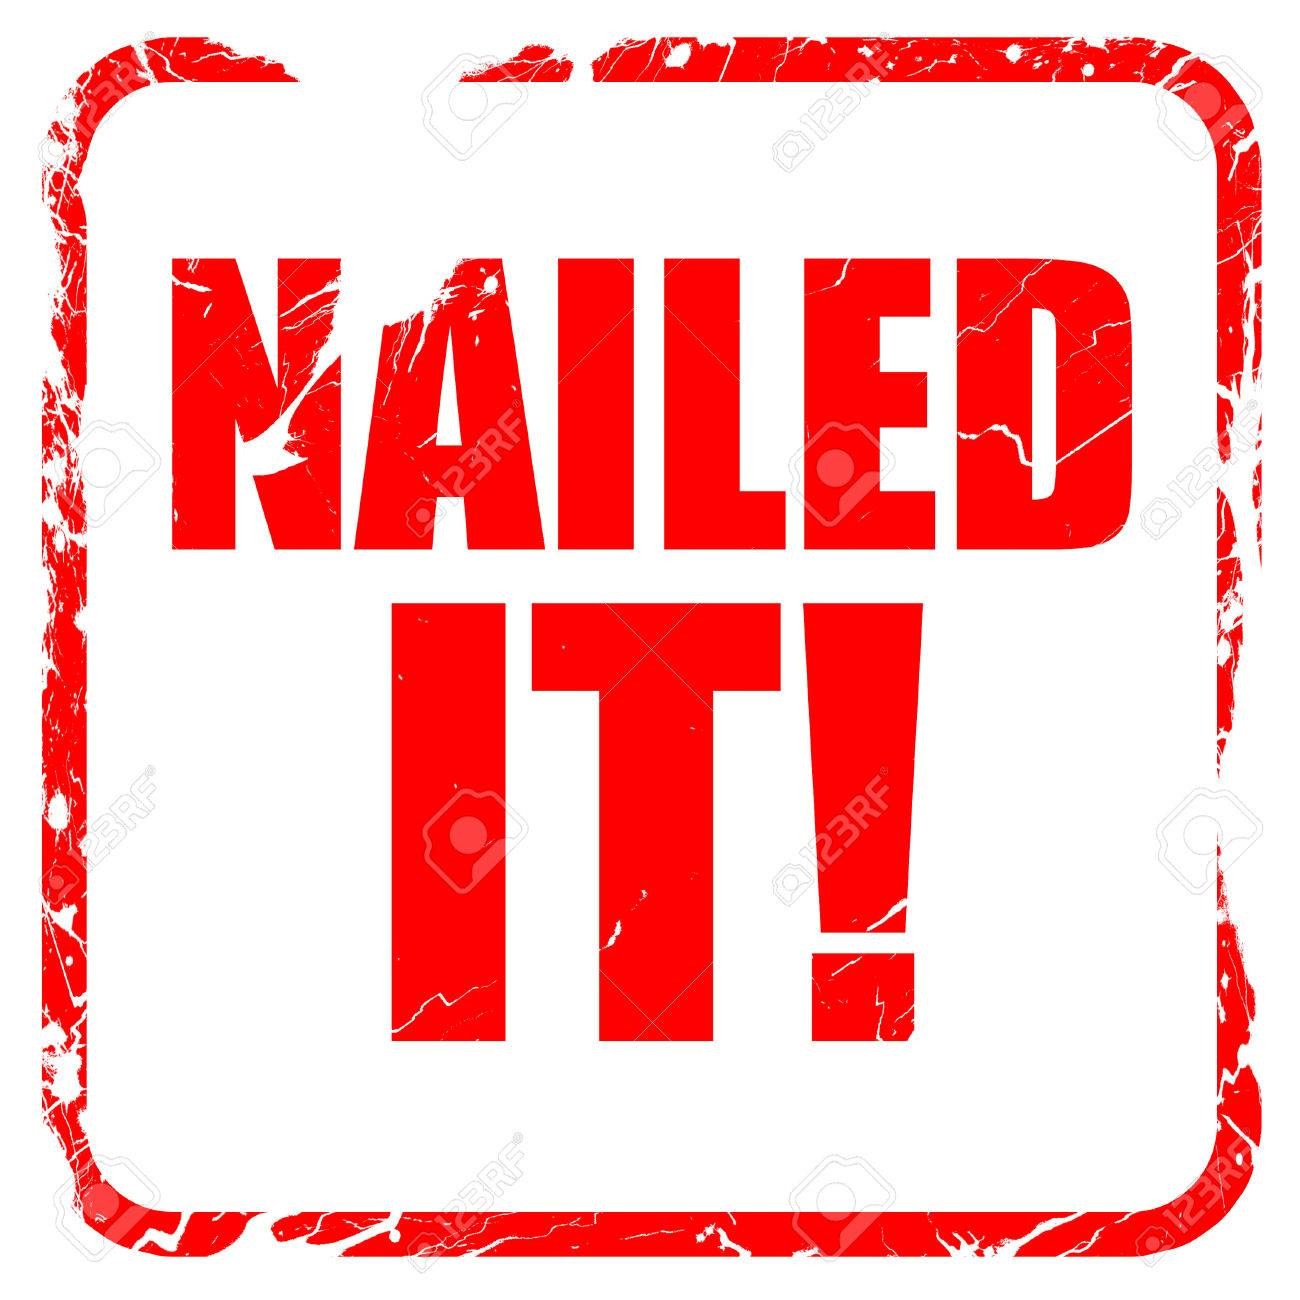 nailed it red rubber stamp with grunge edges stock photo picture